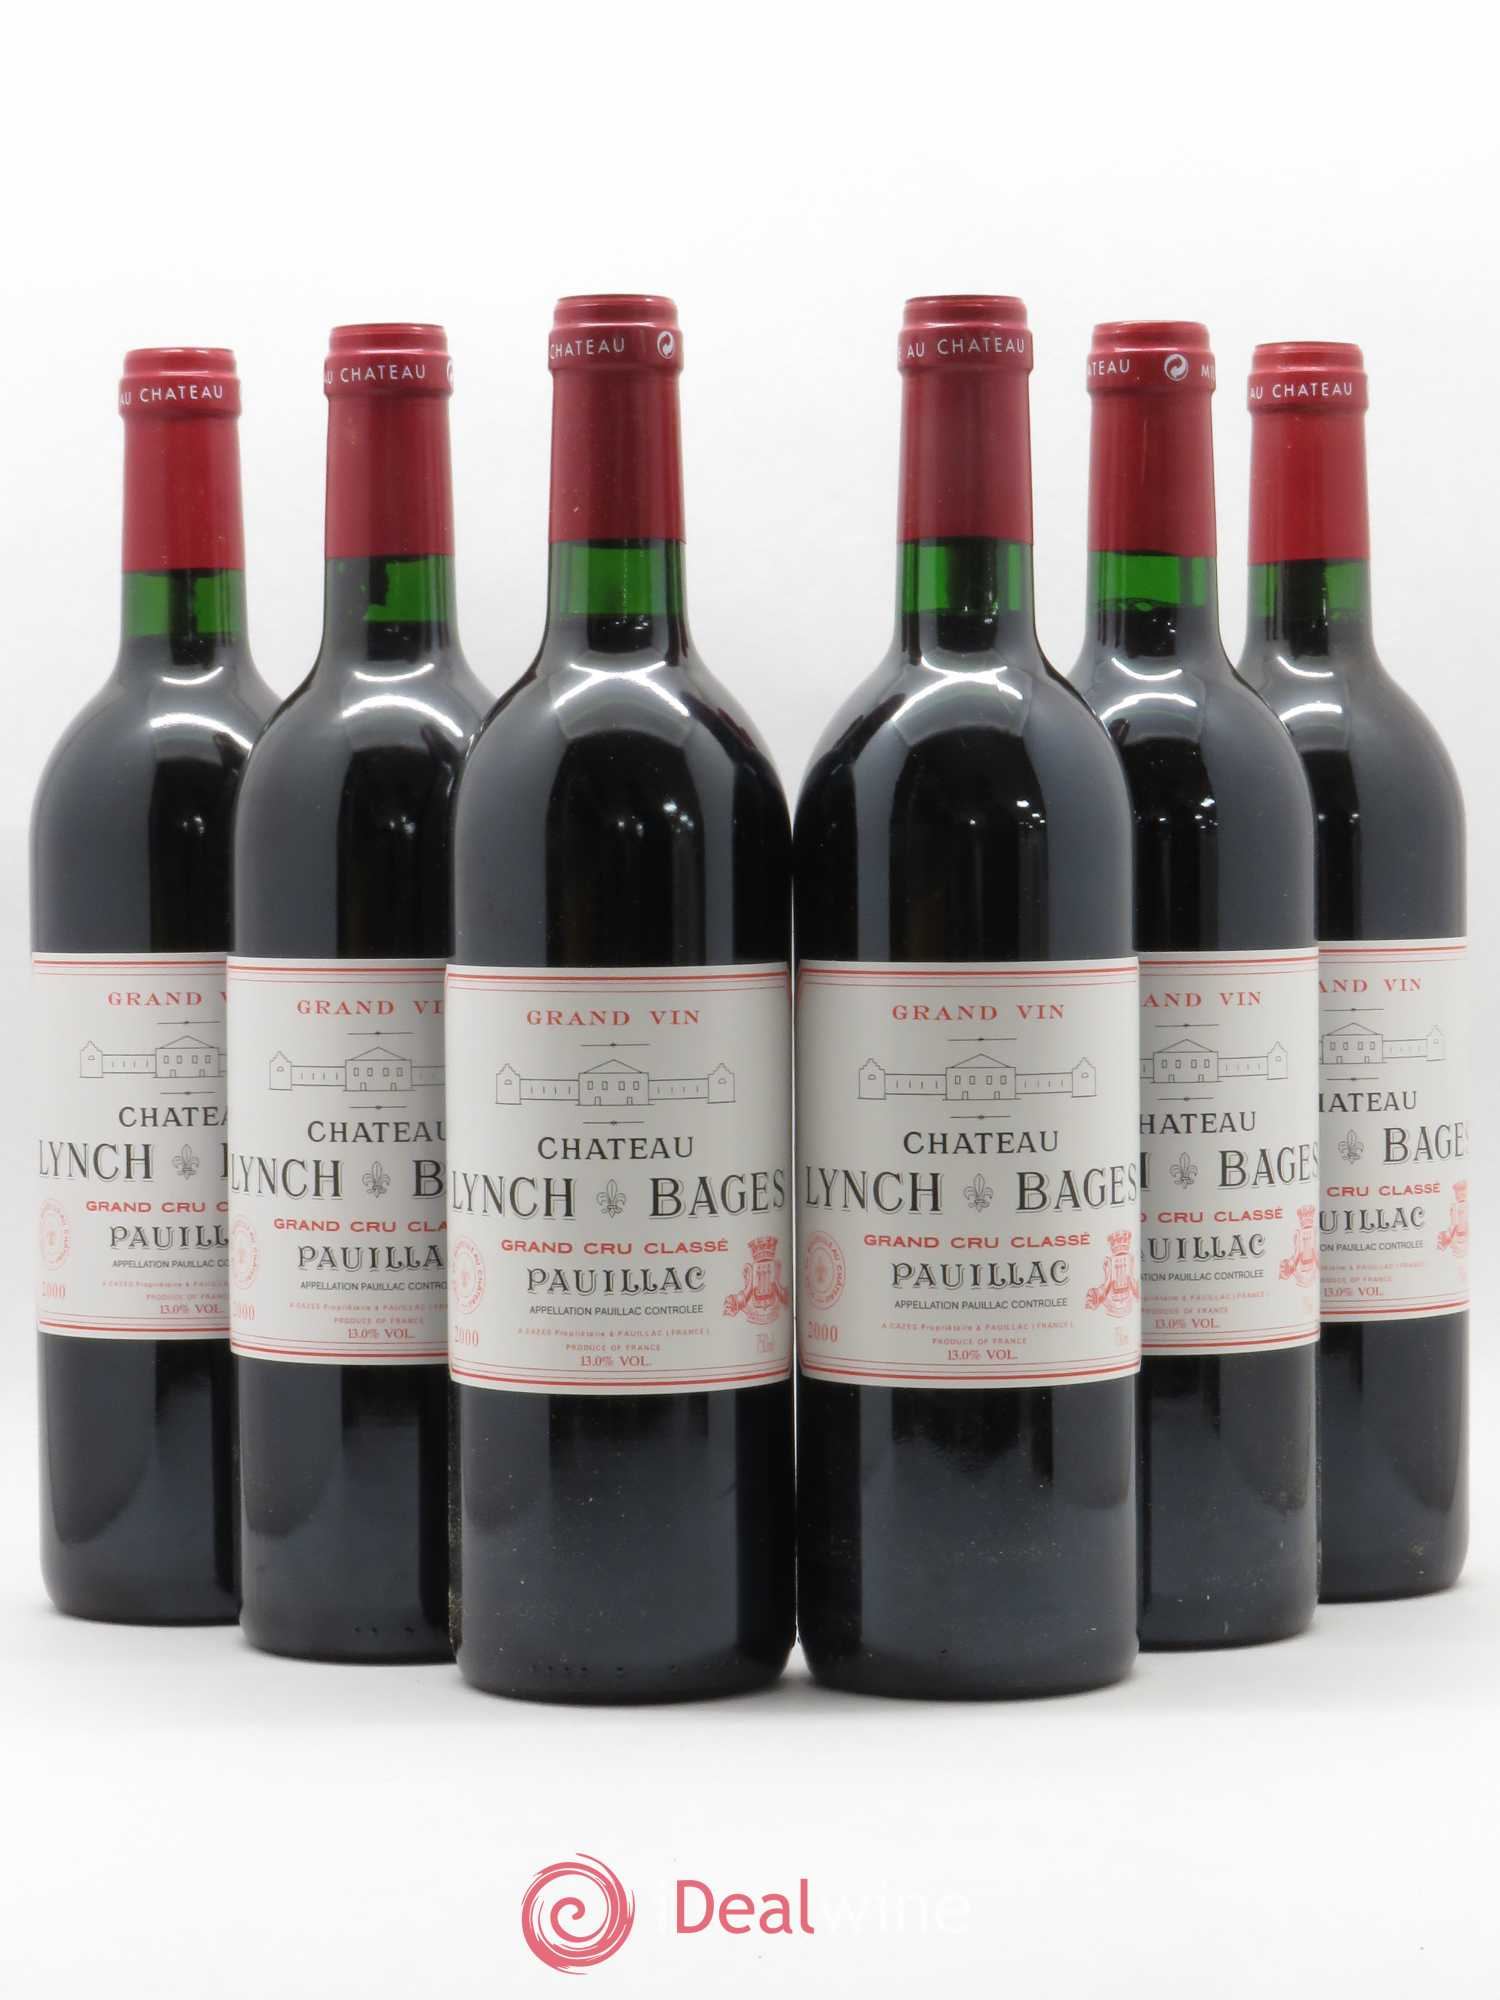 Château Lynch Bages 5ème Grand Cru Classé  2000 - Lot of 6 Bottles